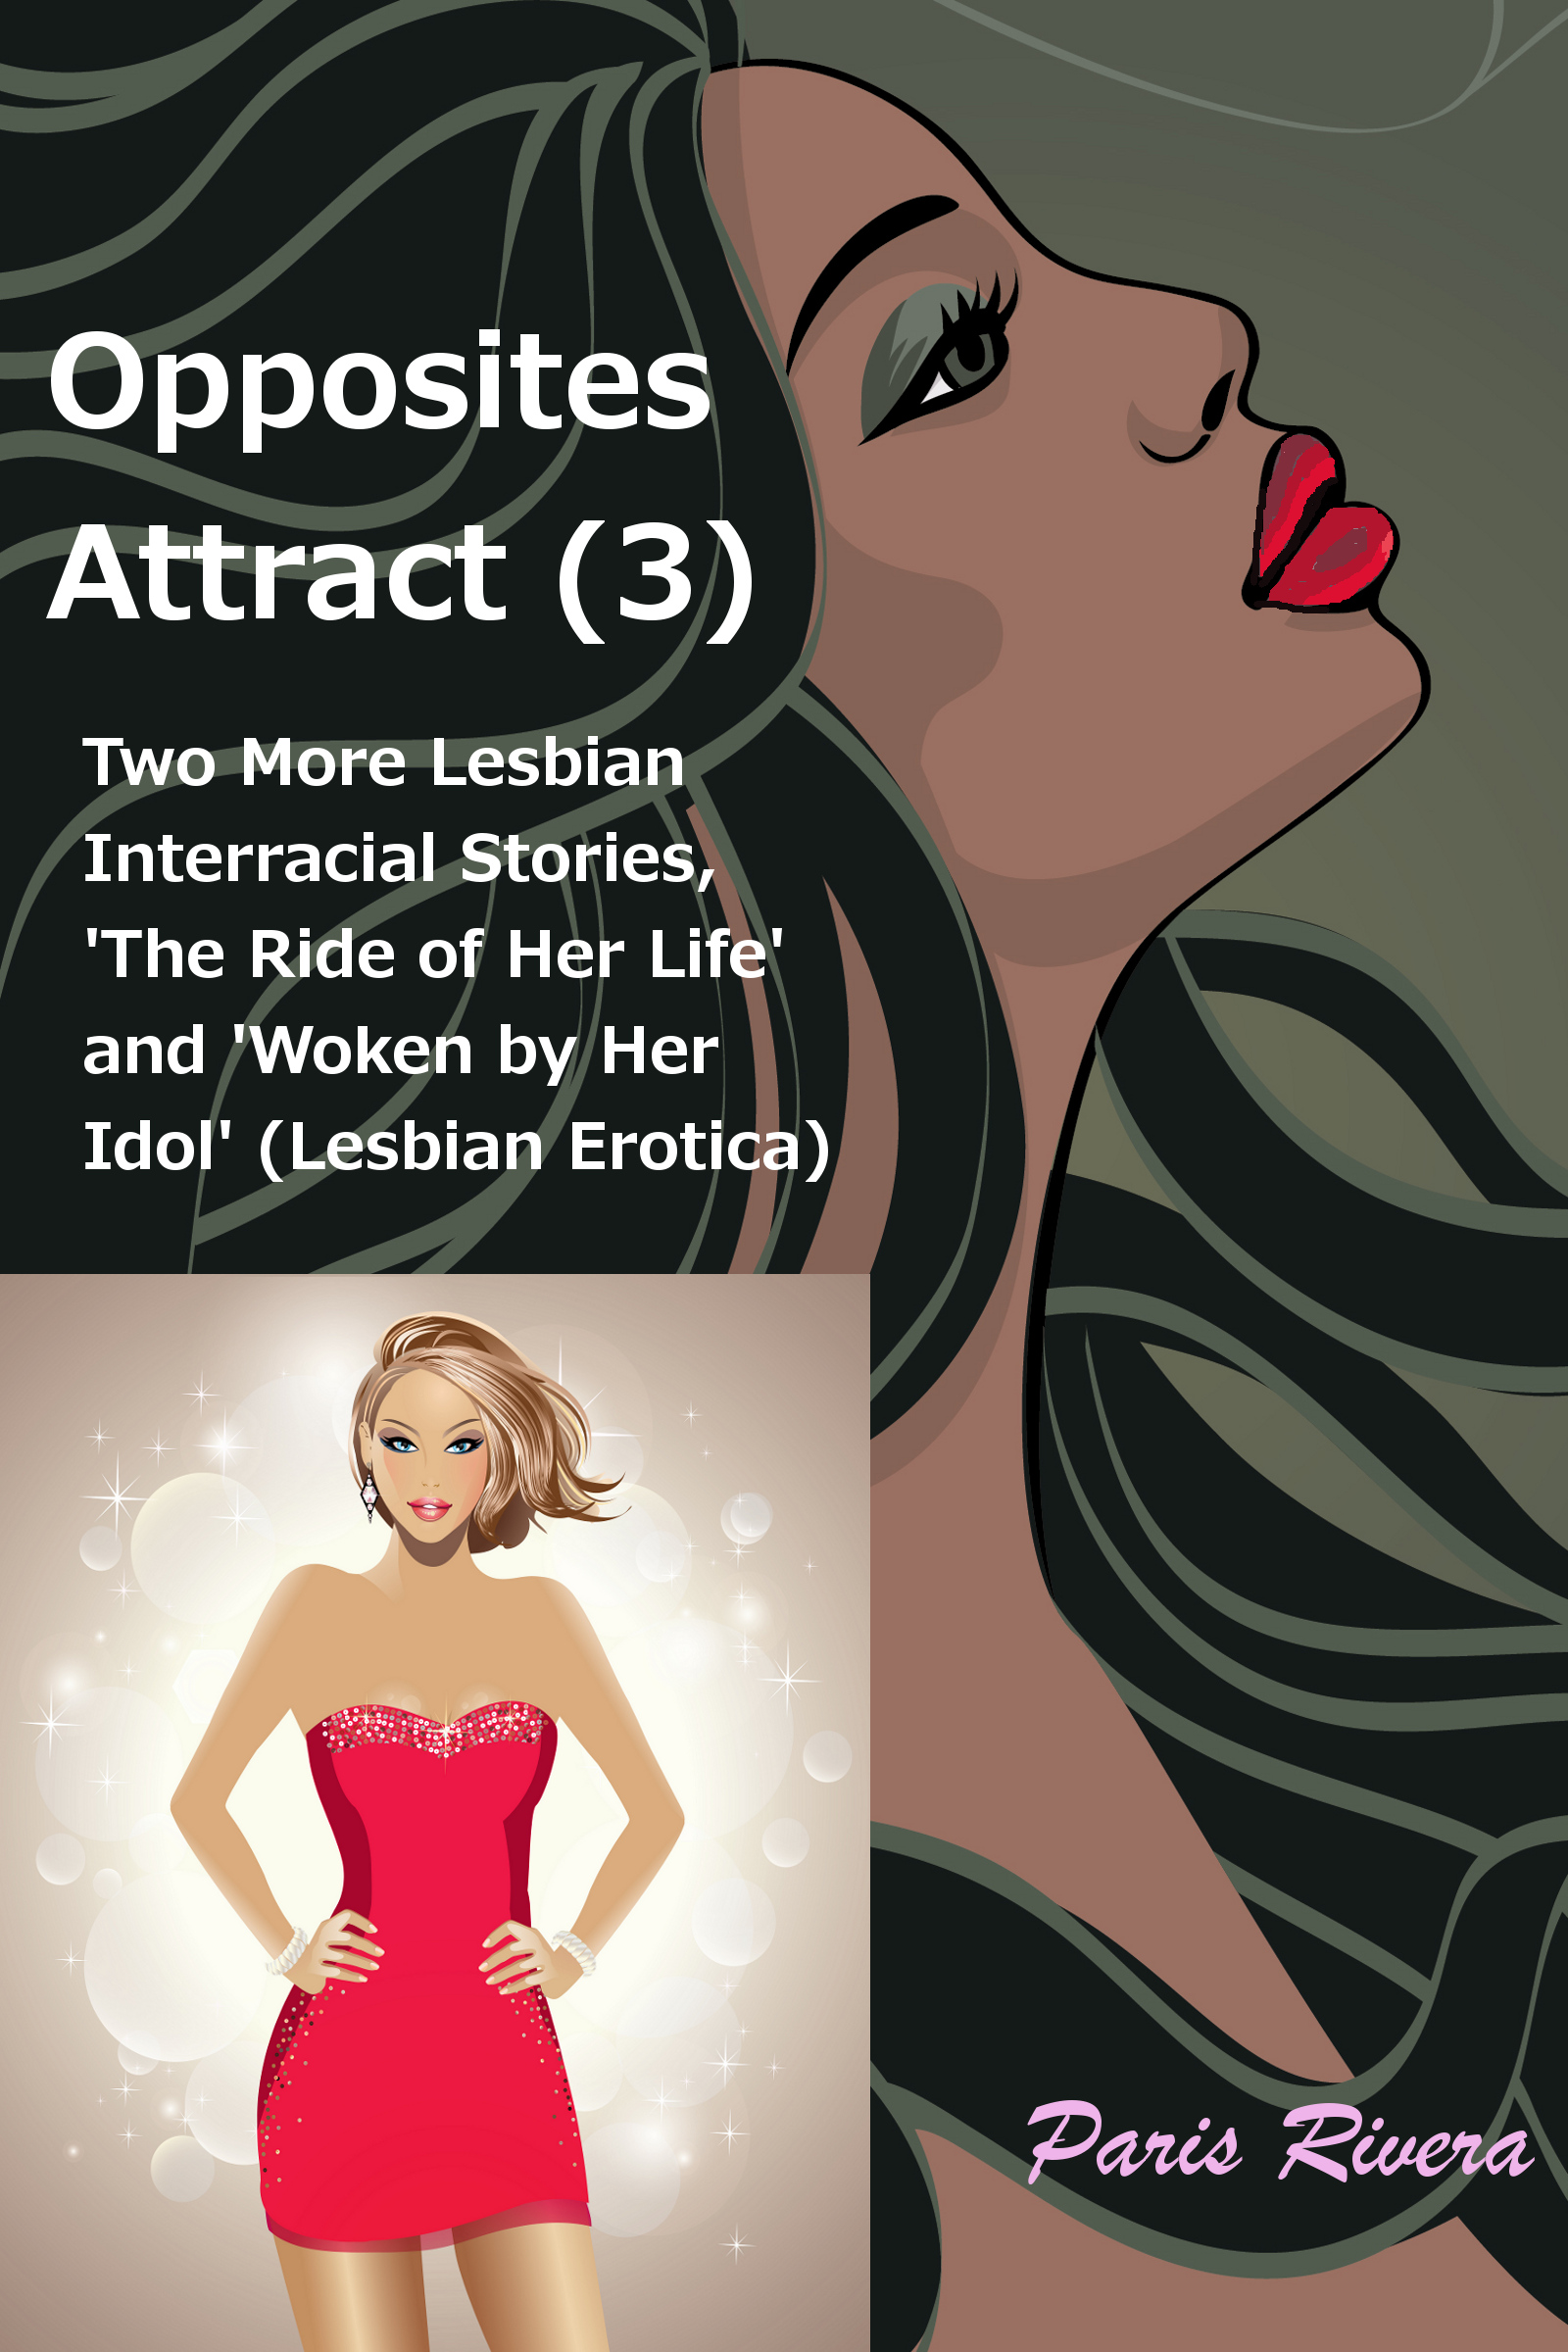 Paris Rivera - Opposites Attract (3): Two more lesbian interracial stories, 'The Ride of her Life' and 'Woken by her Idol'